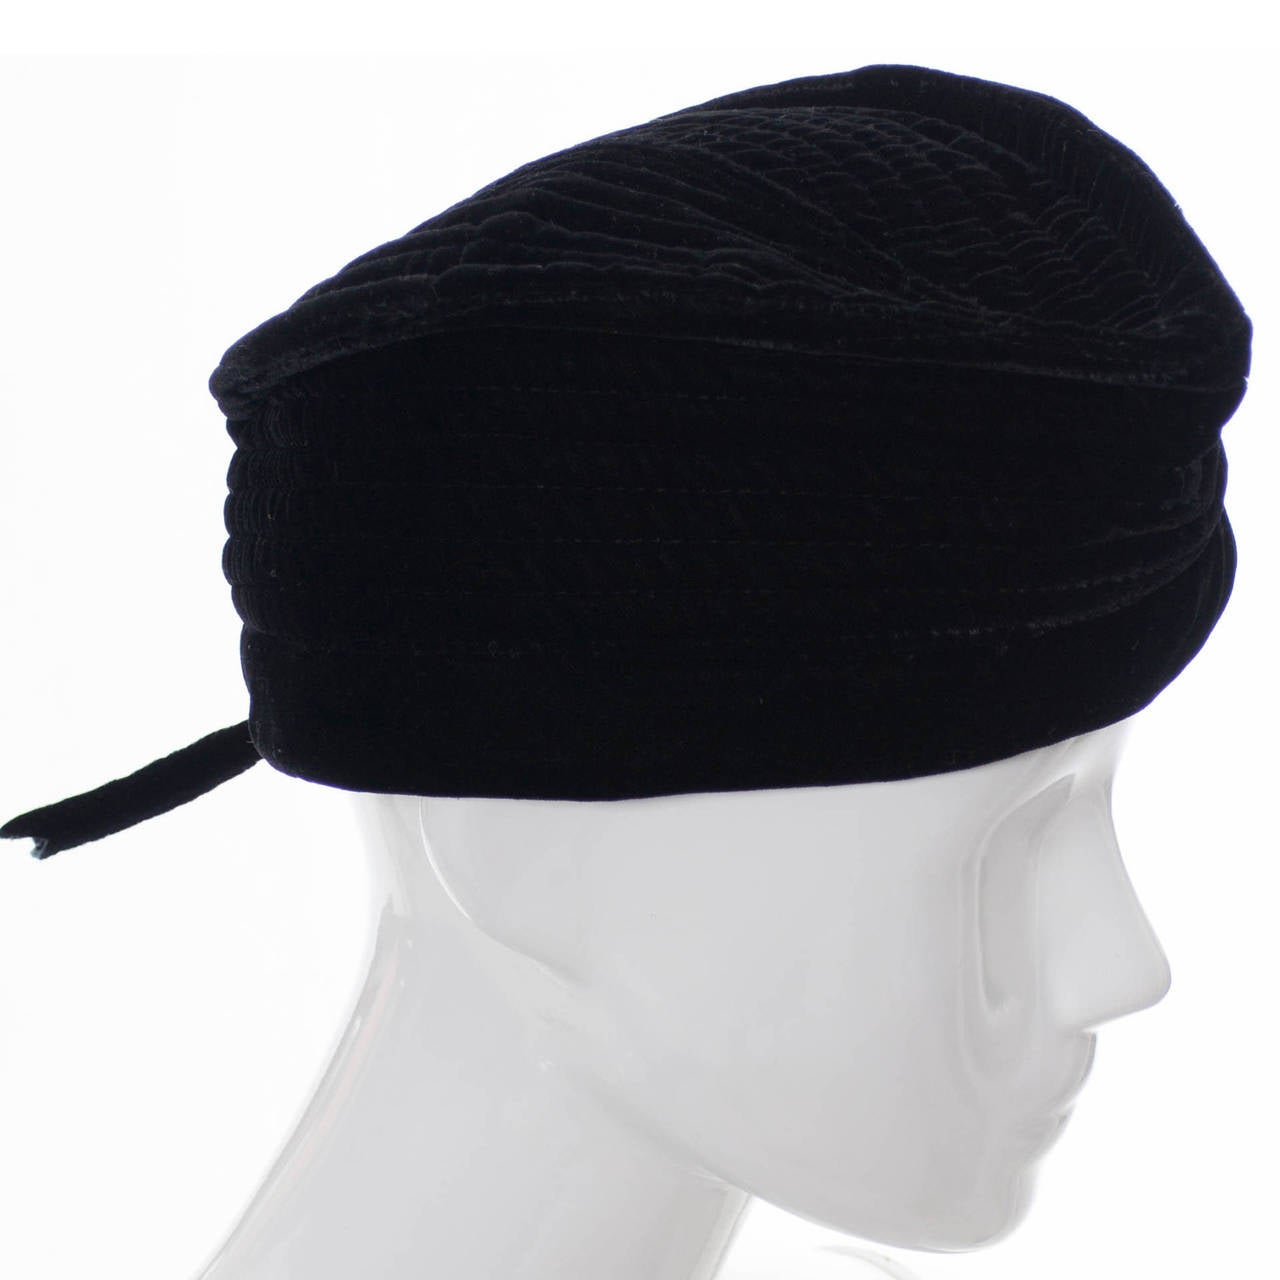 Women s Vintage Valentino Garavani Boutique Vintage Hat Rare Style Cap in  Black Velvet For Sale bf796ddc2d7